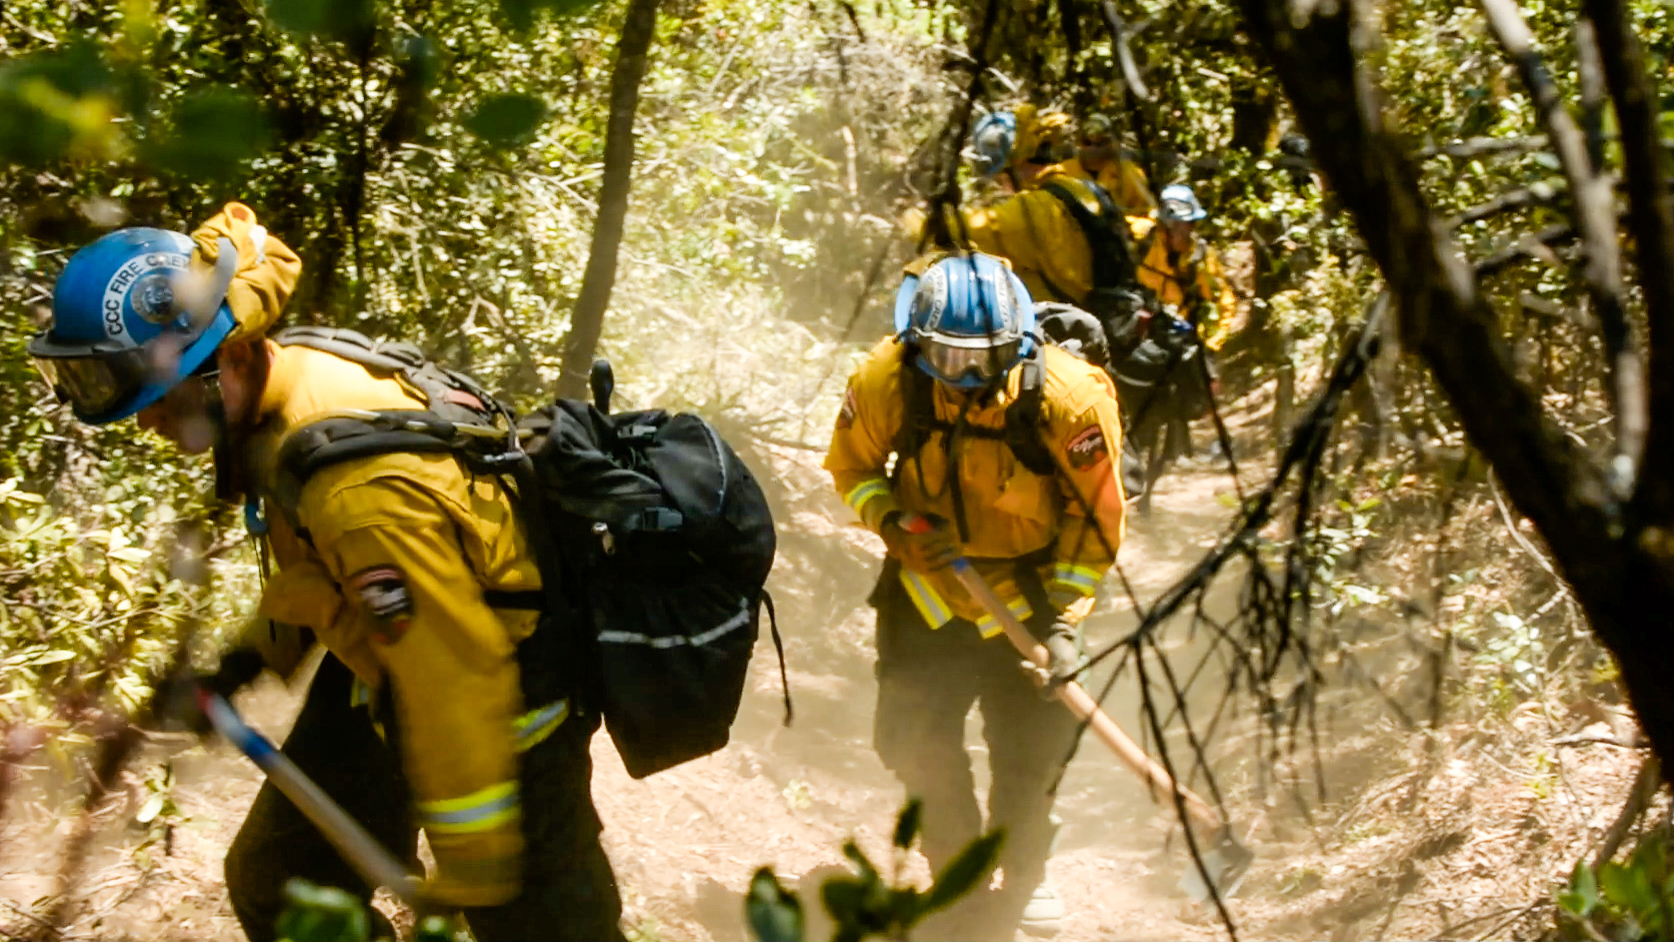 two corpsmembers in fire gear and with hand tools walk through wooded area, with tree limbs and leaves in foreground